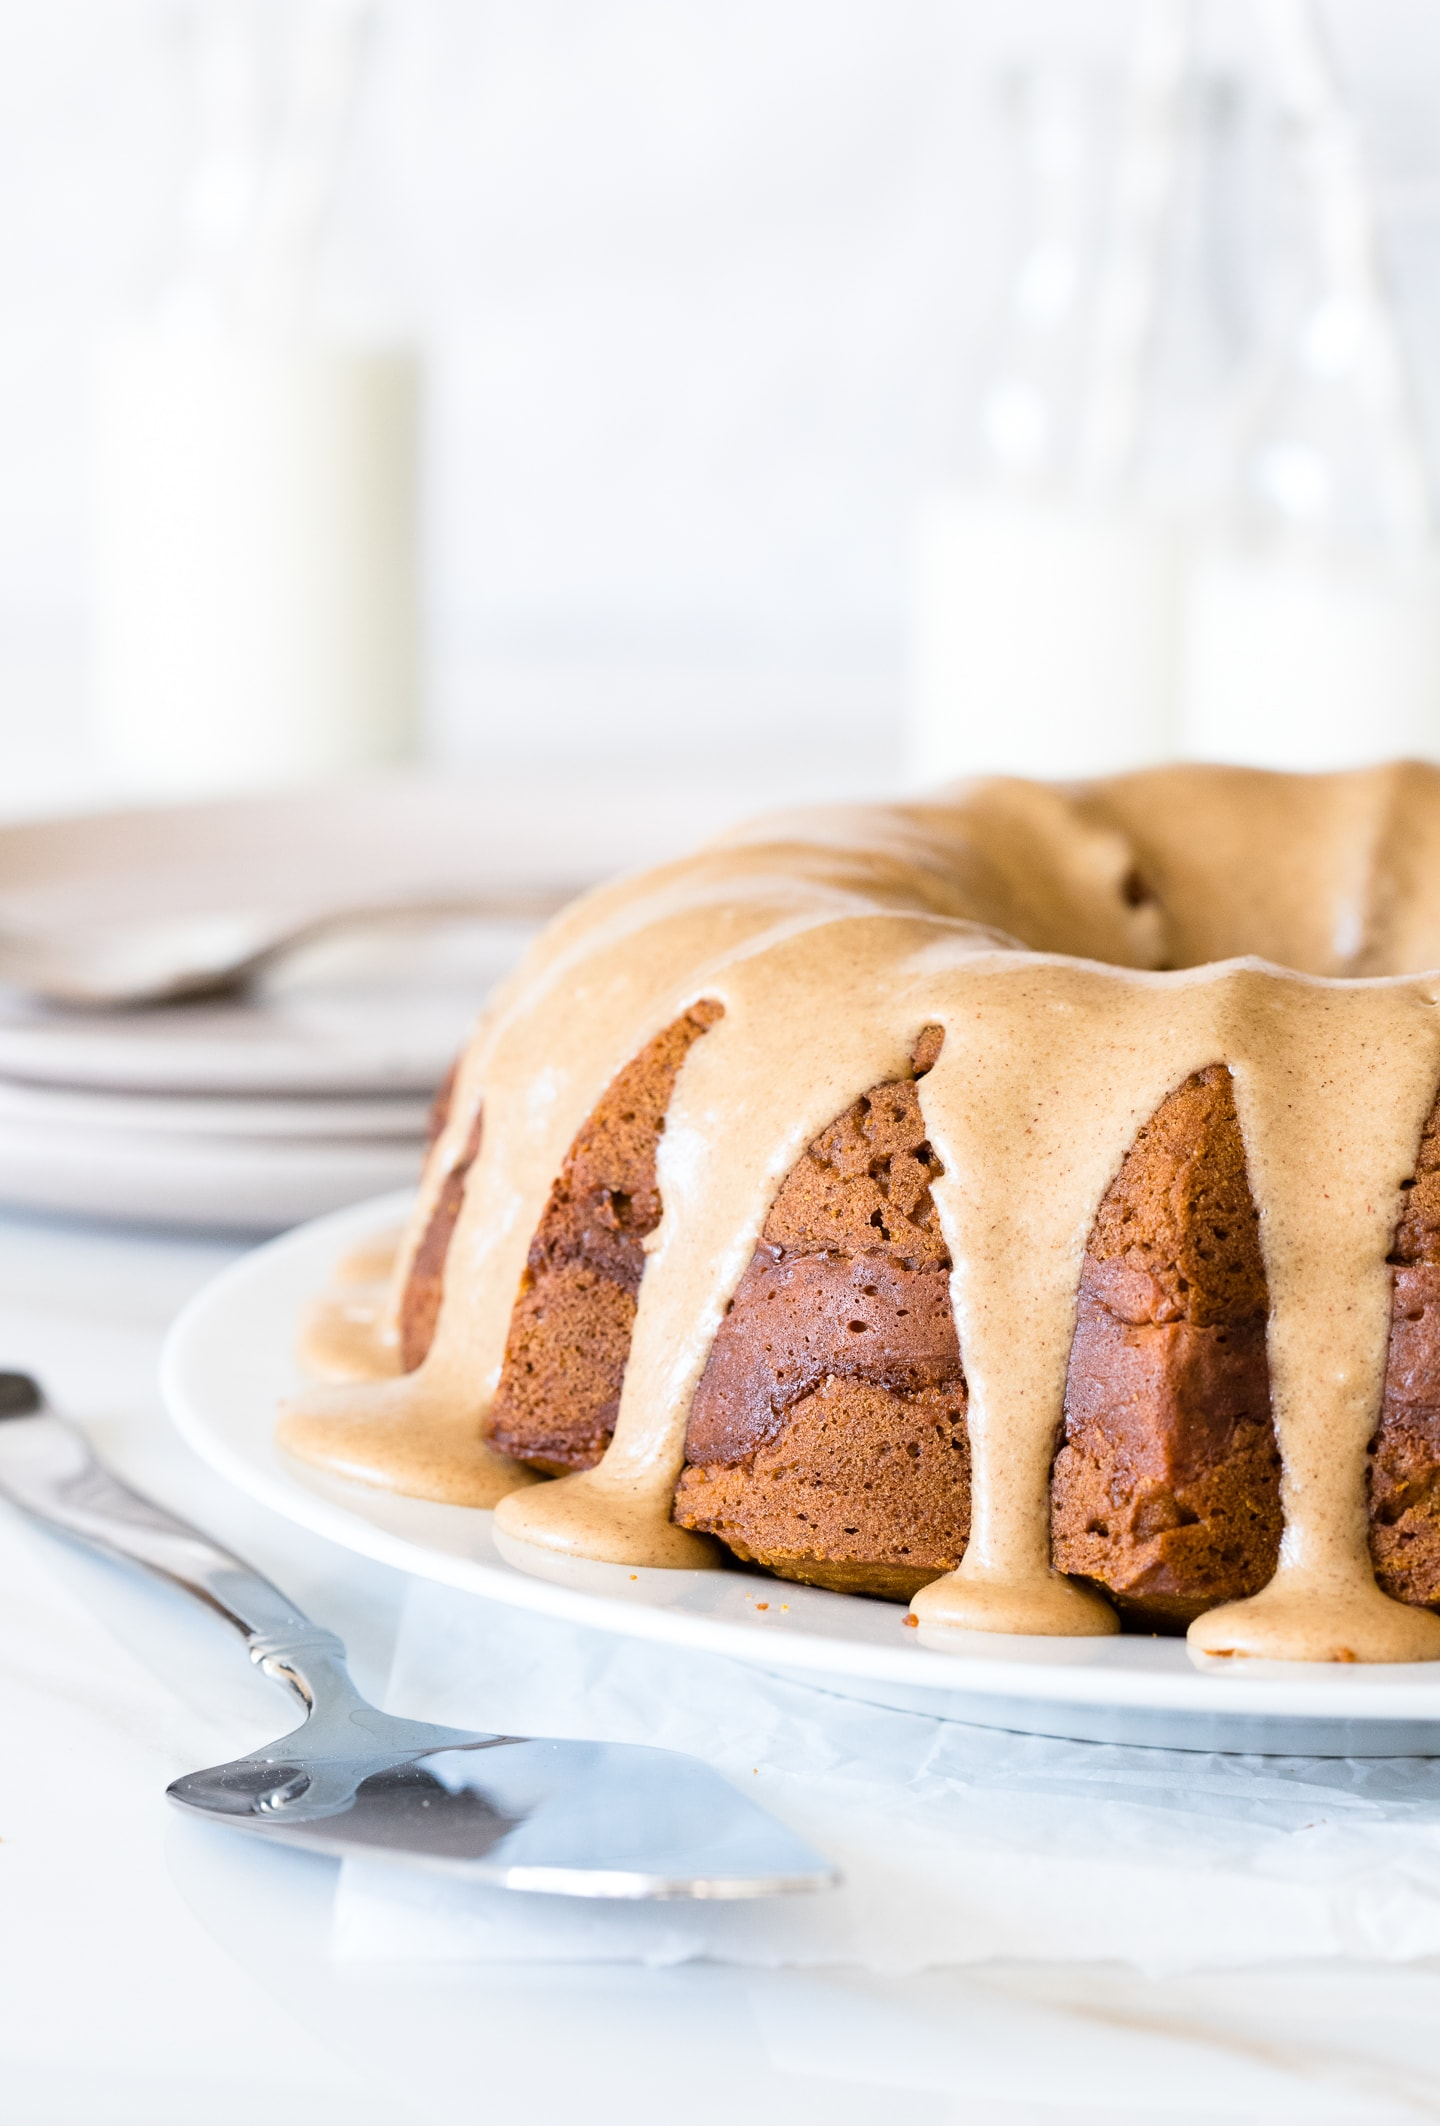 Front-facing view of a pumpkin bundt cake topped with a brown sugar glaze, ready to serve on a white plate with a serving spatula placed nearby.